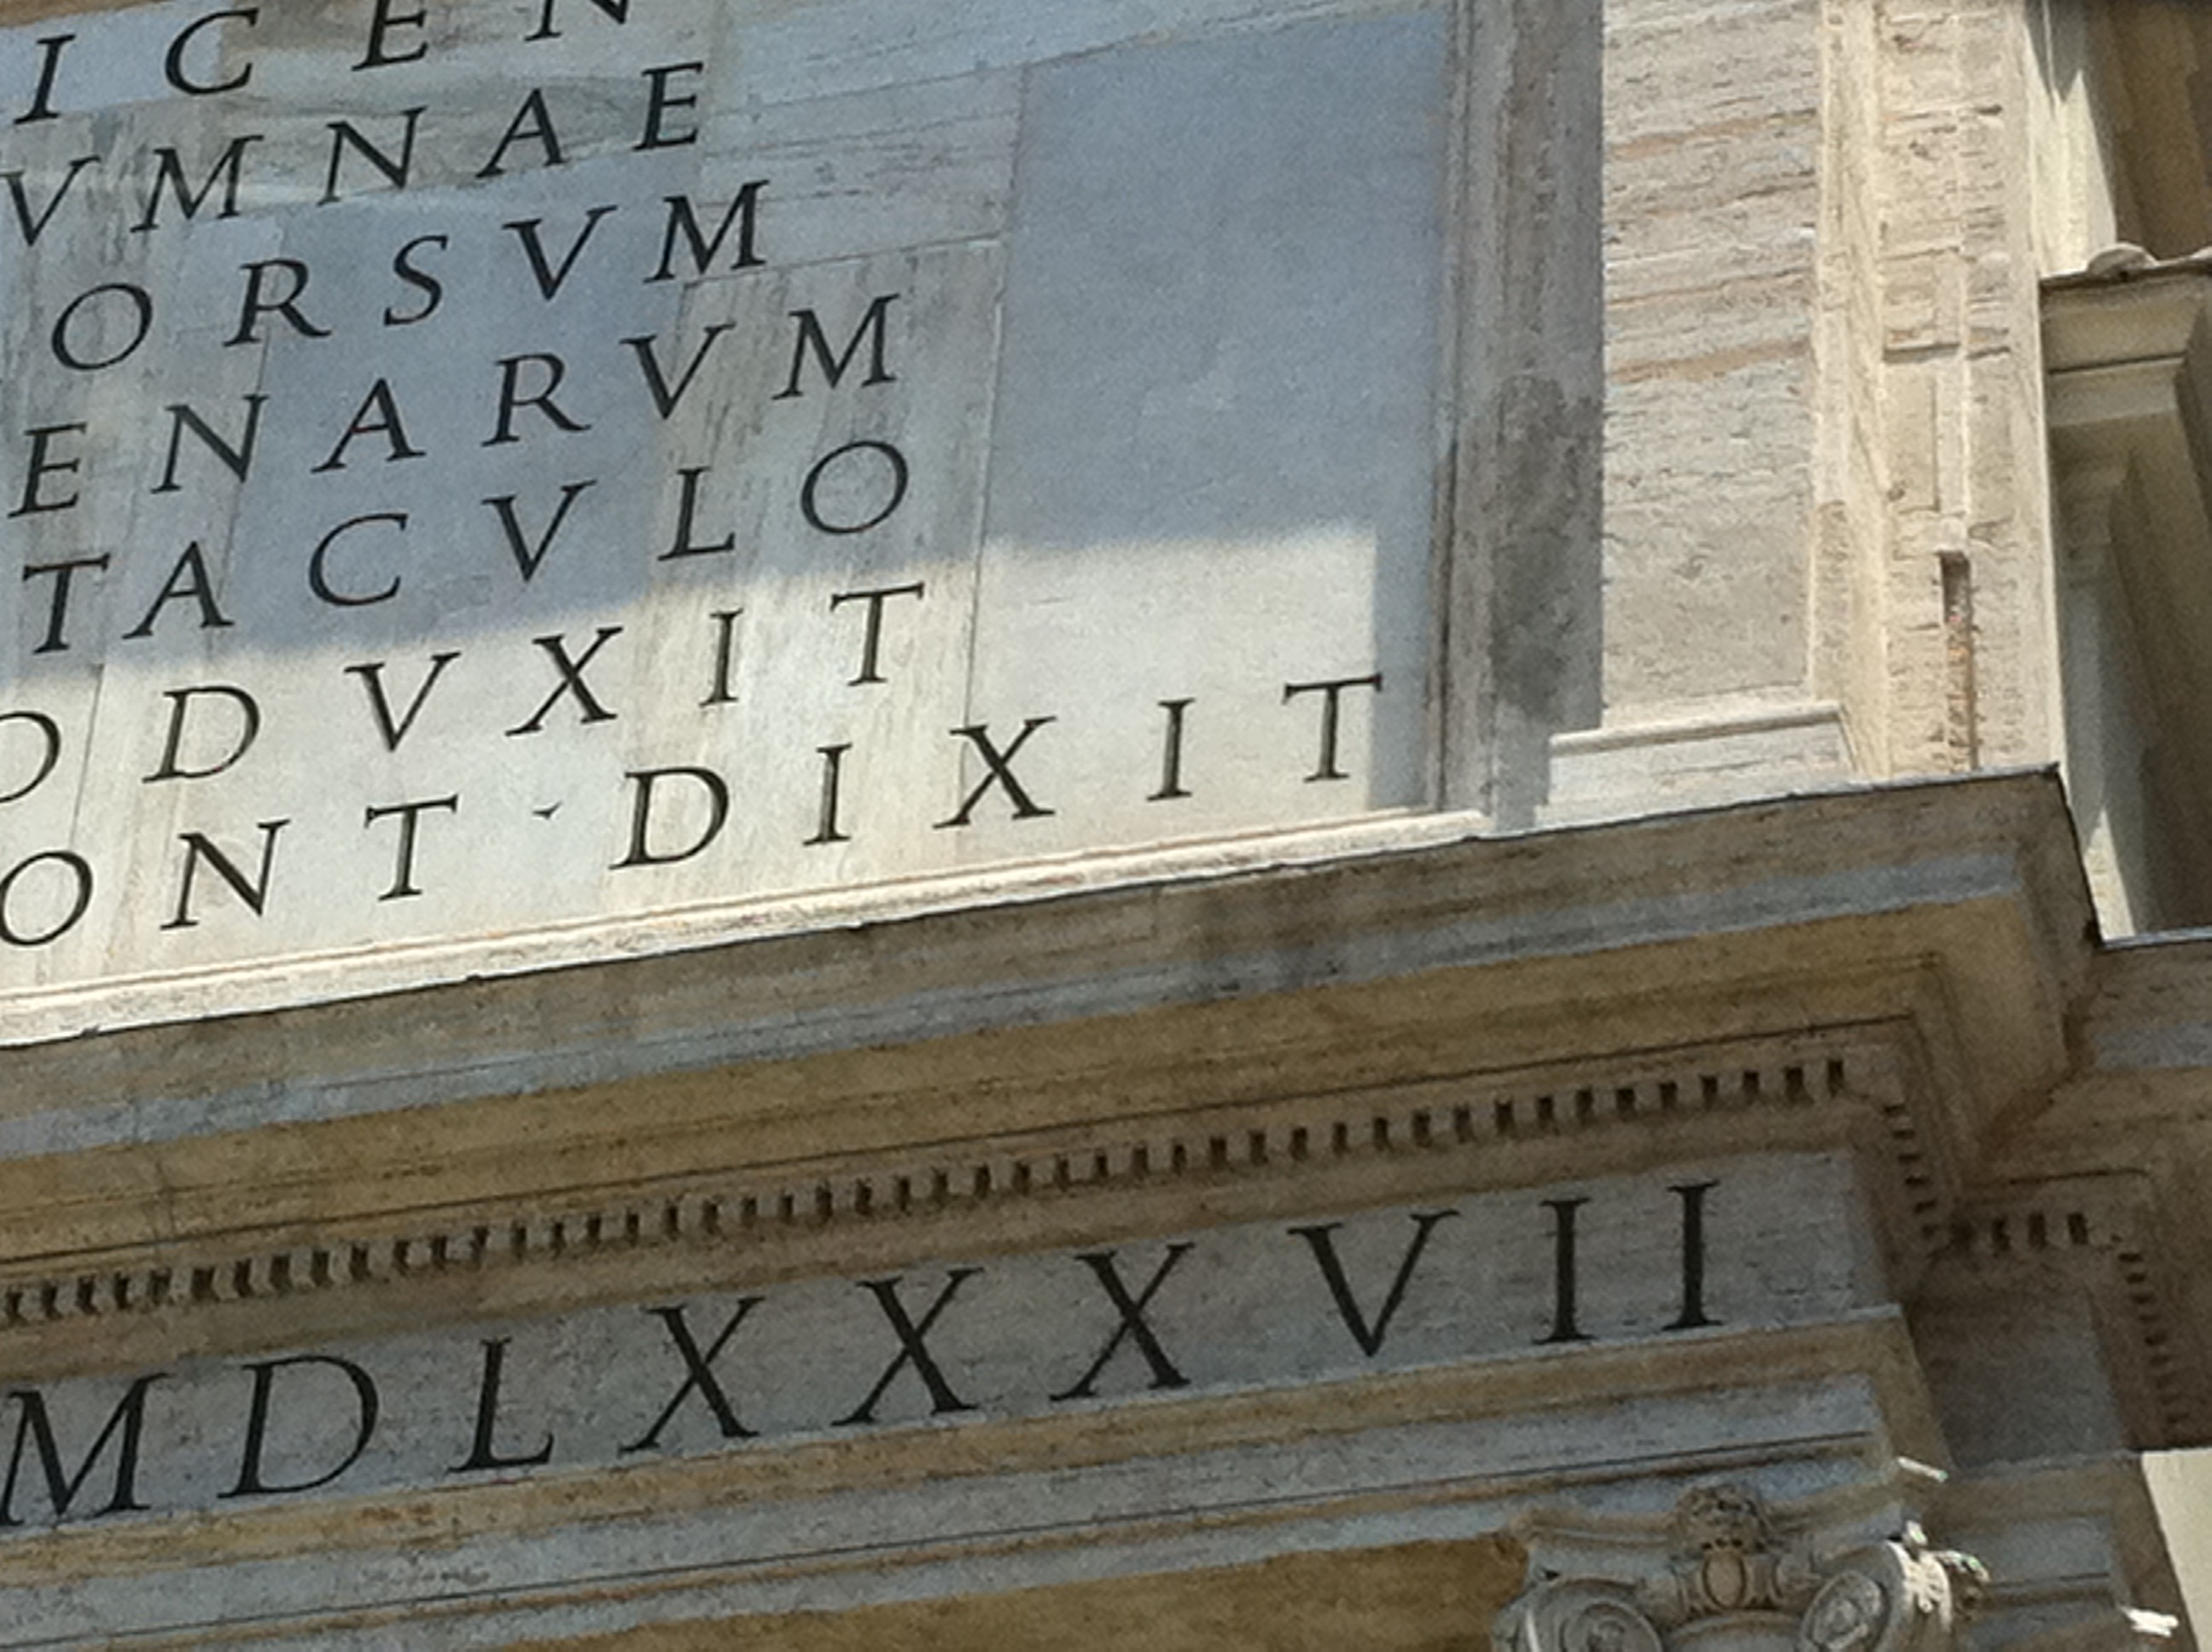 AtoZChallenge X for X - that's ten in Roman Numerals - TravelGenee